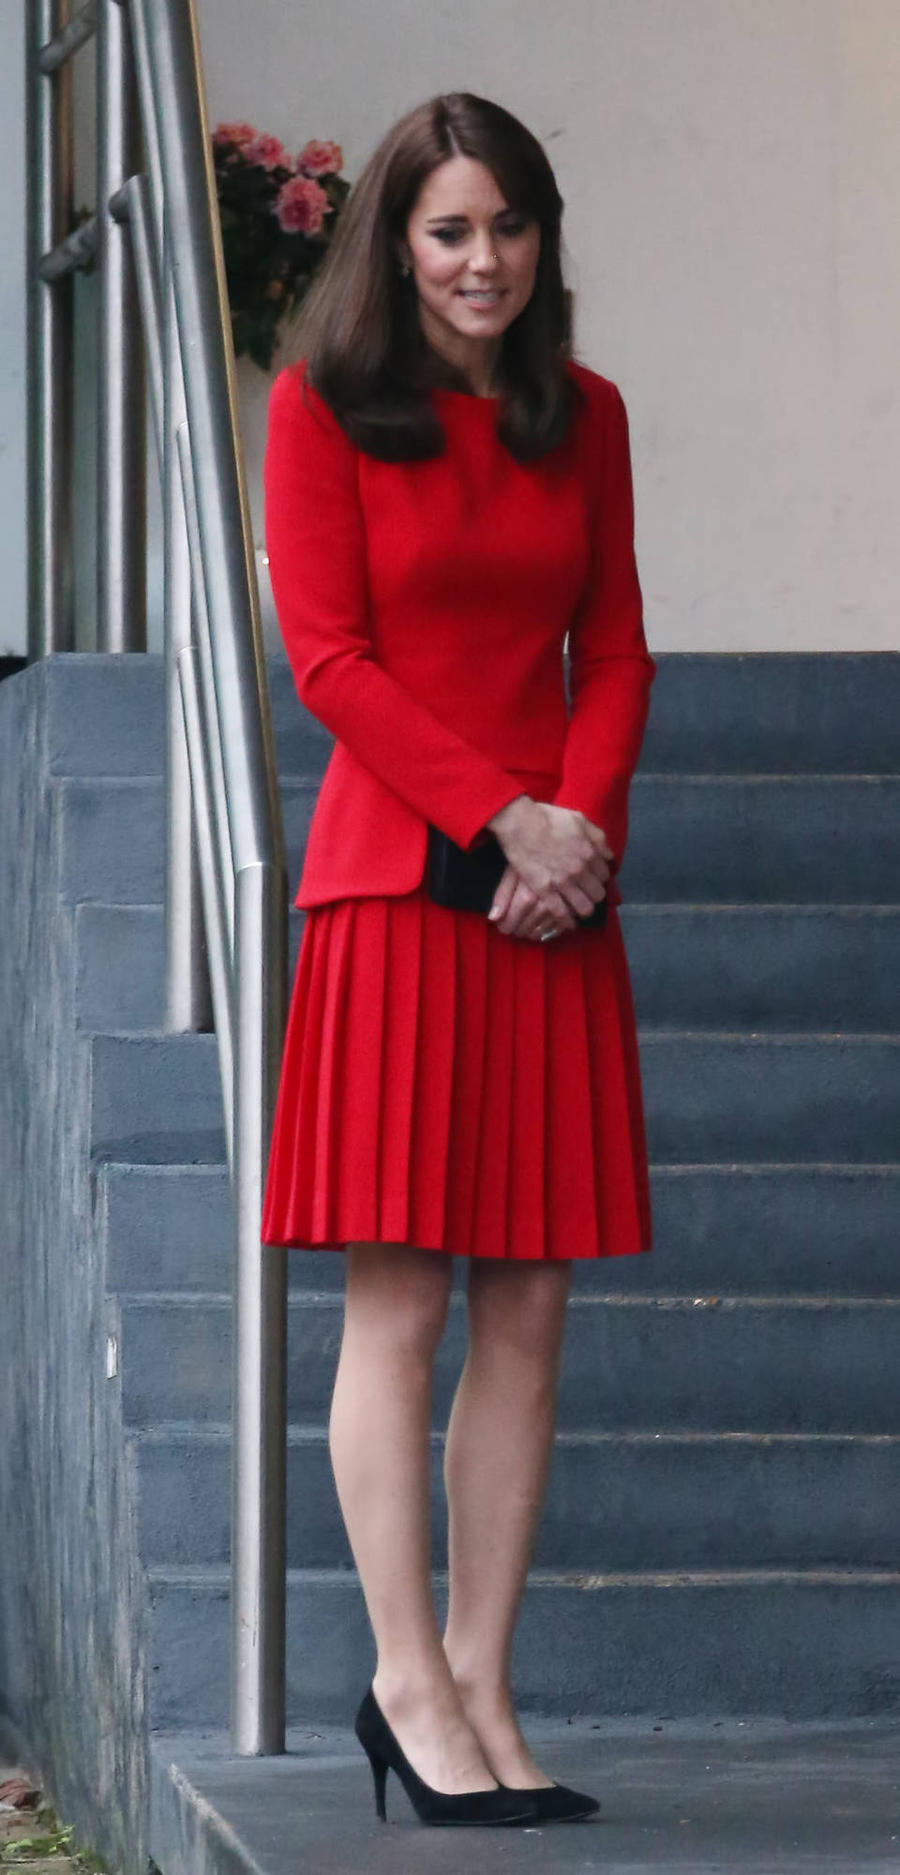 Duchess Of Cambridge To Give First Solo Tv Interview - Report